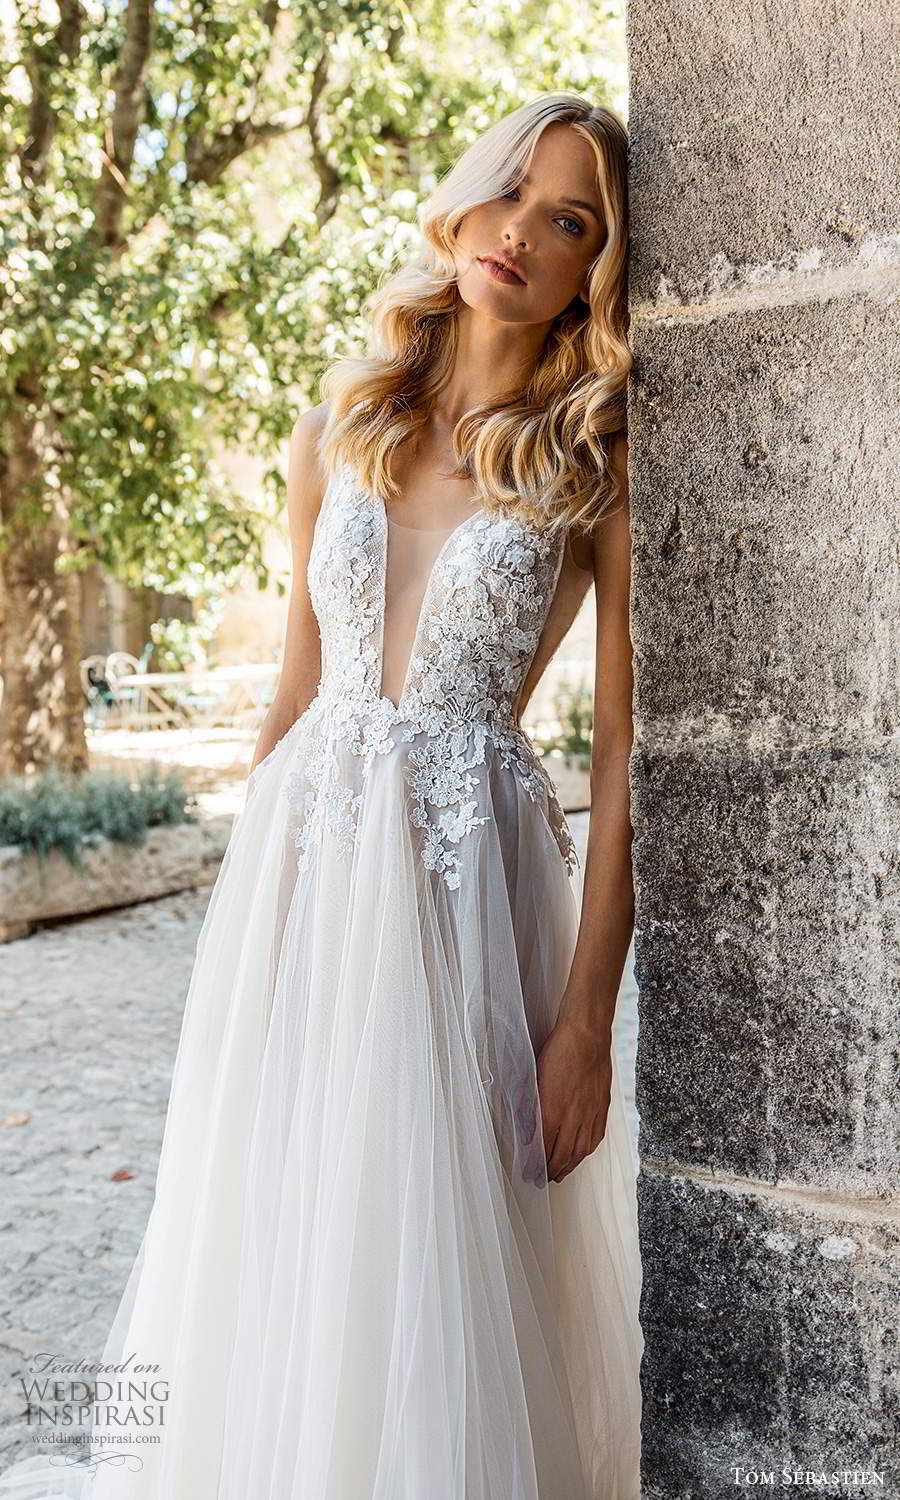 tom sebastien 2021 bridal provence sleeveless straps plunging v neckline side cutout embellished lace bodice a line ball gown wedding dress chapel train (9) mv